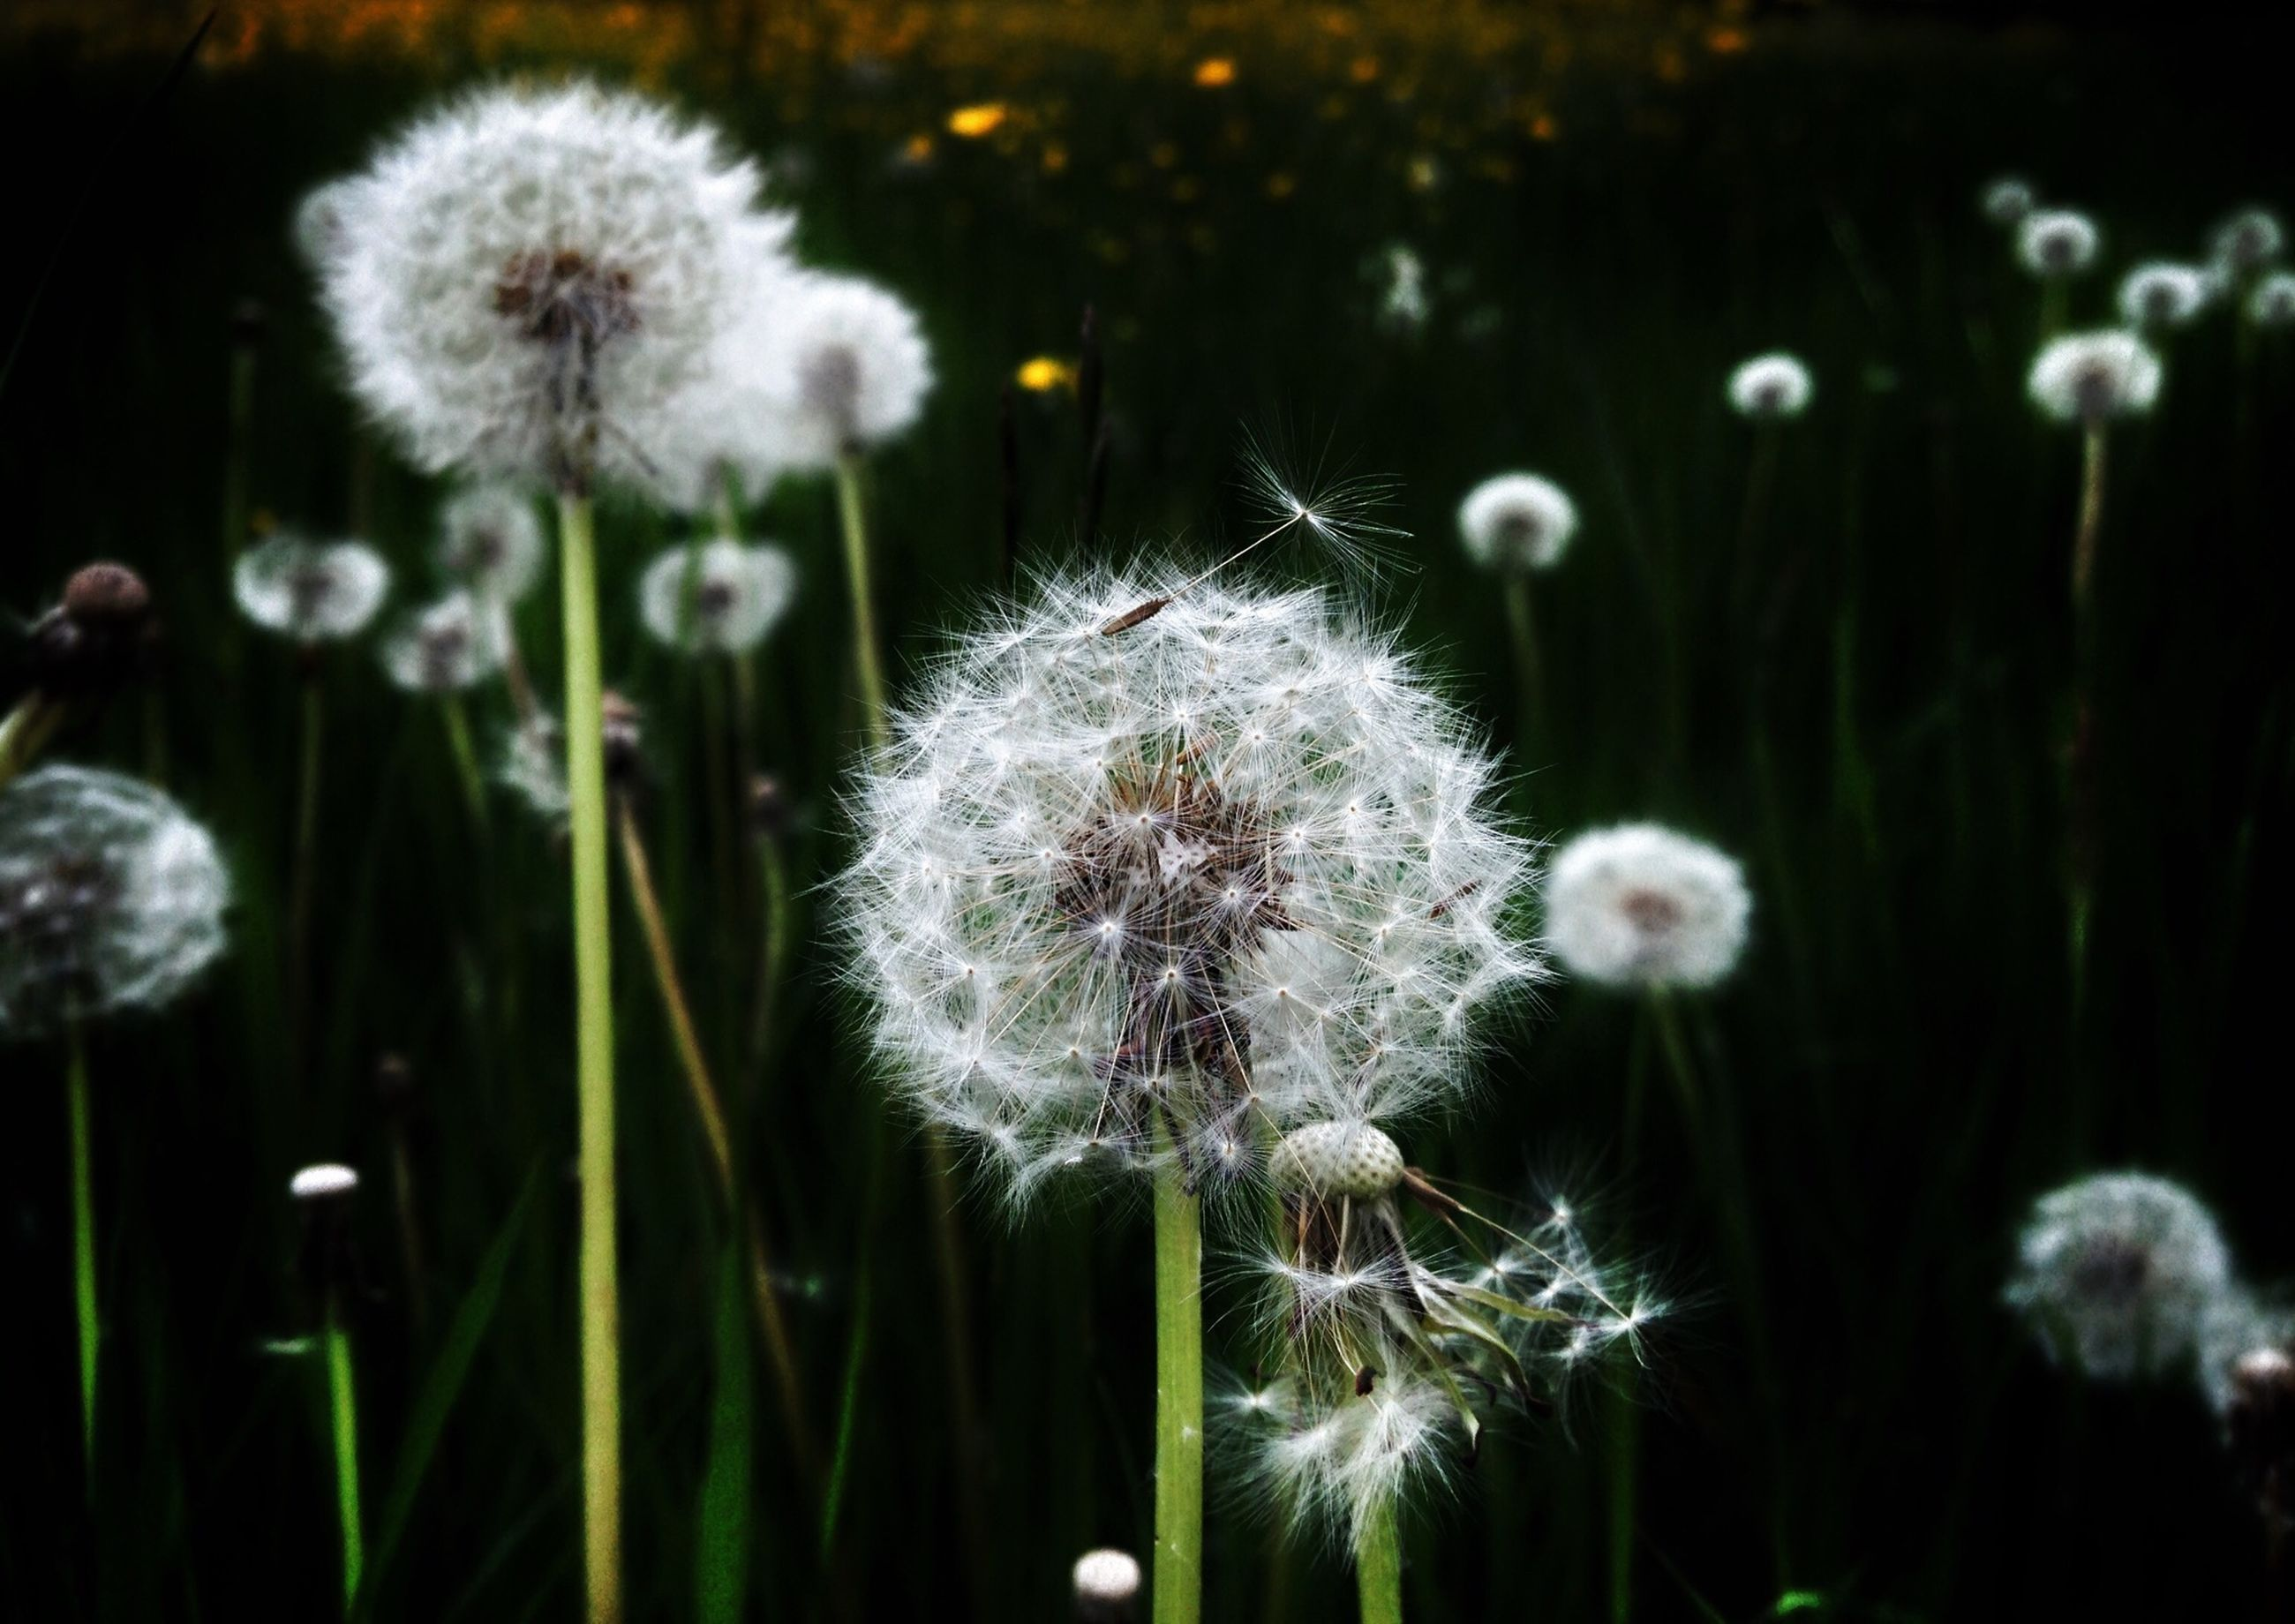 flower, dandelion, fragility, freshness, growth, flower head, beauty in nature, nature, close-up, focus on foreground, wildflower, stem, dandelion seed, white color, plant, uncultivated, softness, field, day, no people